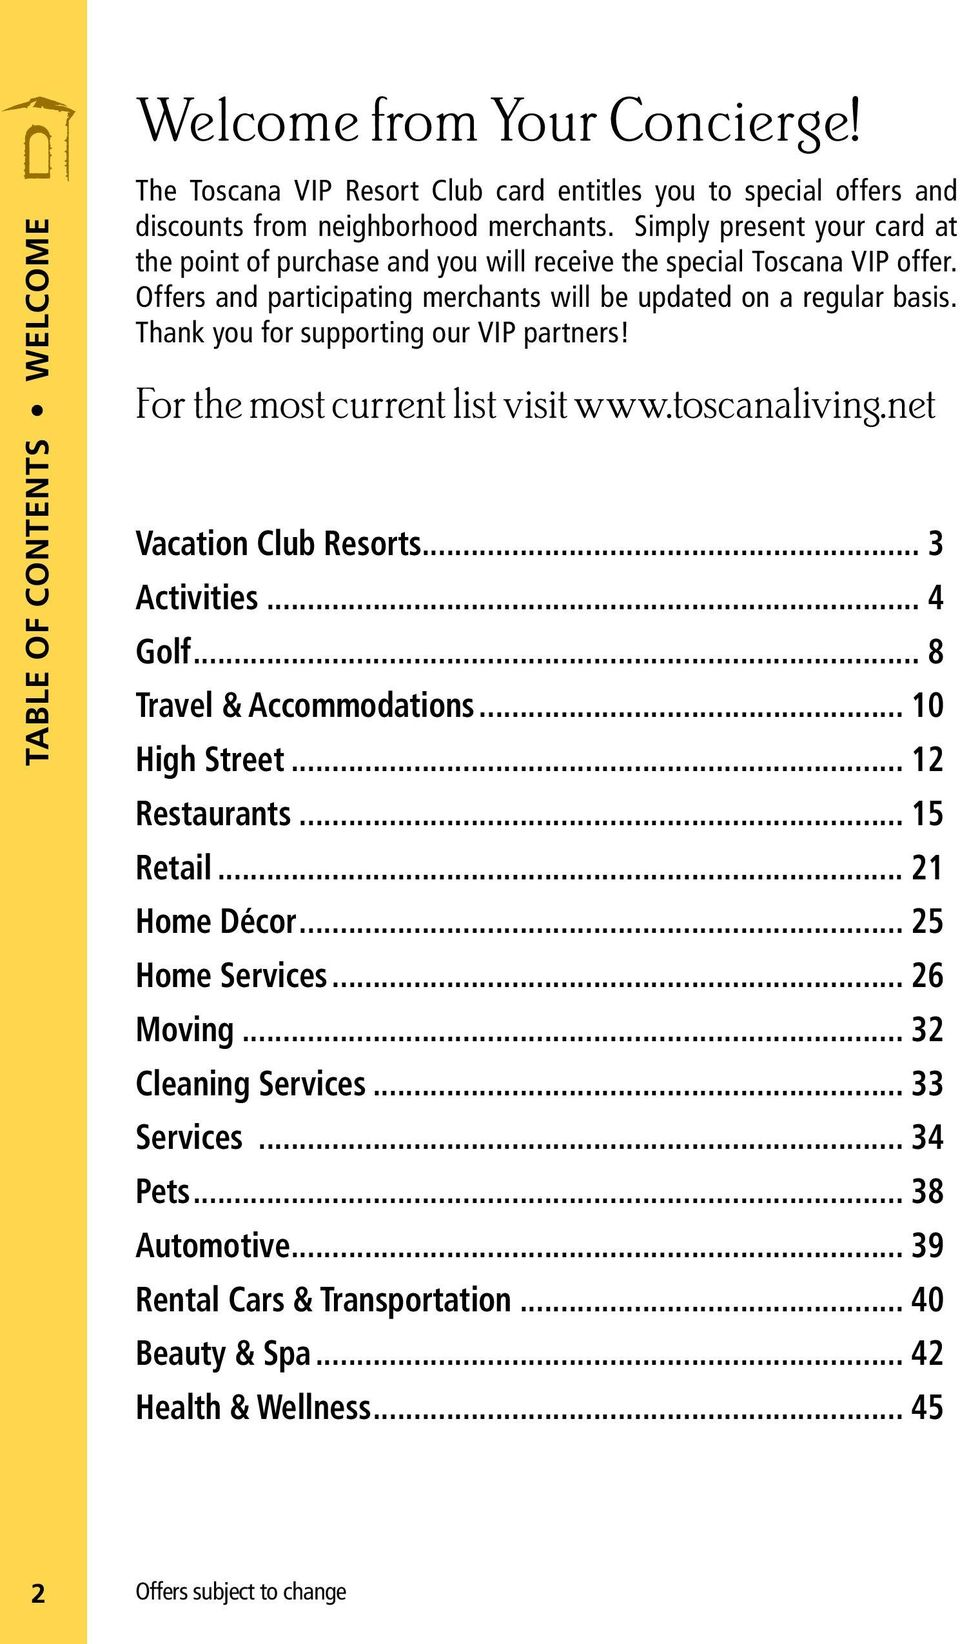 Thank you for supporting our VIP partners! For the most current list visit www.toscanaliving.net Vacation Club Resorts... 3 Activities... 4 Golf... 8 Travel & Accommodations... 10 High Street.